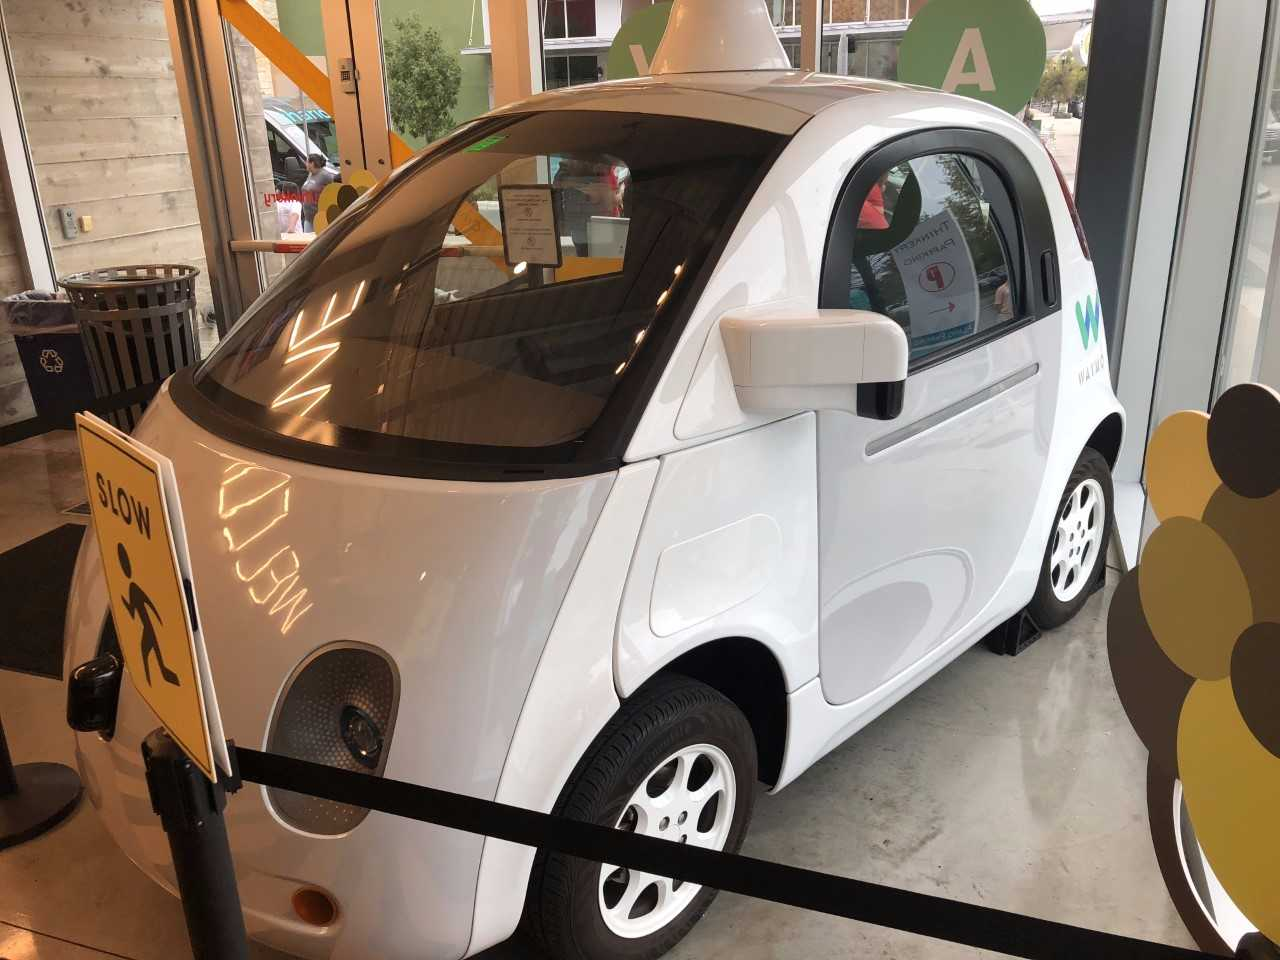 The Firefly self-driving car exhibit at The Thinkery_566282